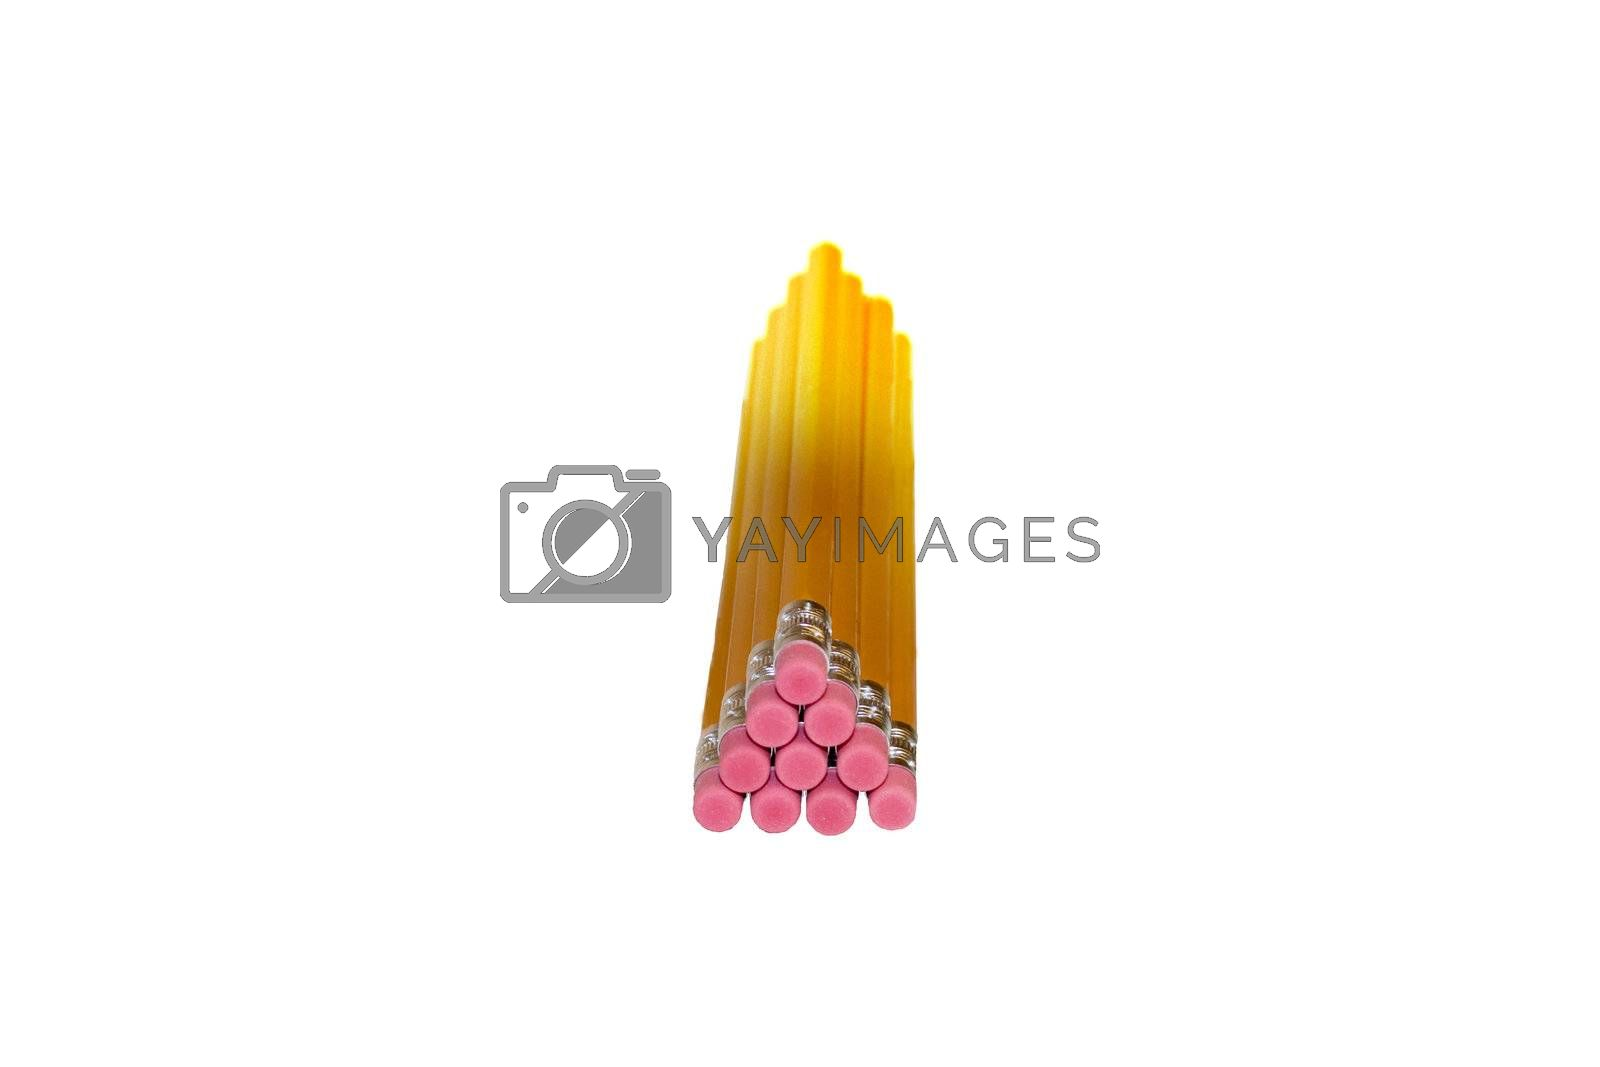 Isolated Pencils in a Pyramid  by mwp1969